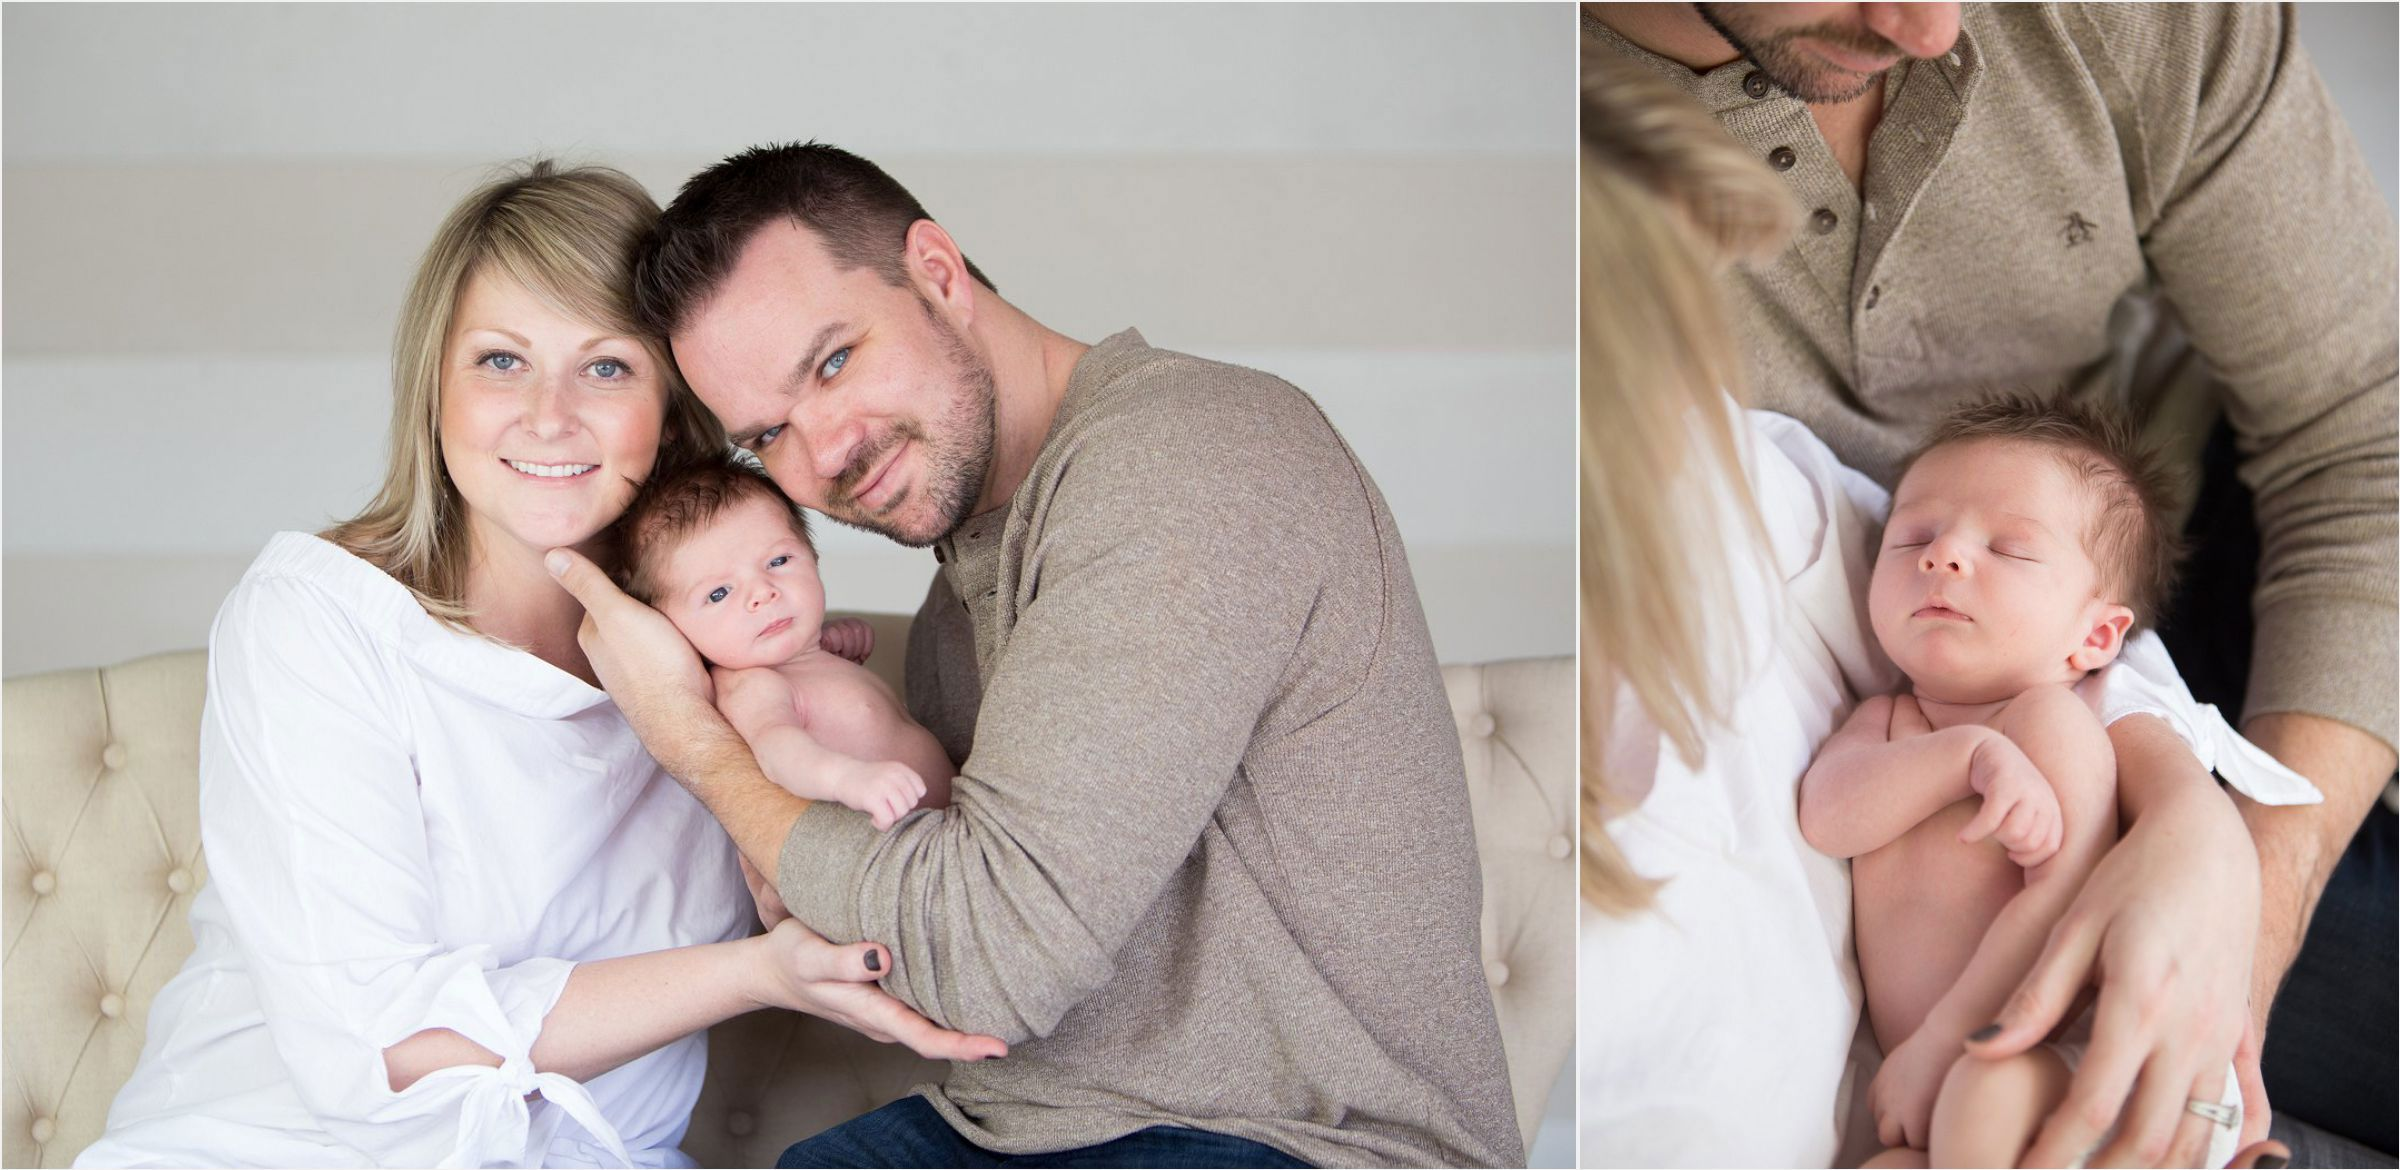 A-new-family-cuddles-together-for-their-newborn-photoshoot-at-Denver-photography-studio-0002